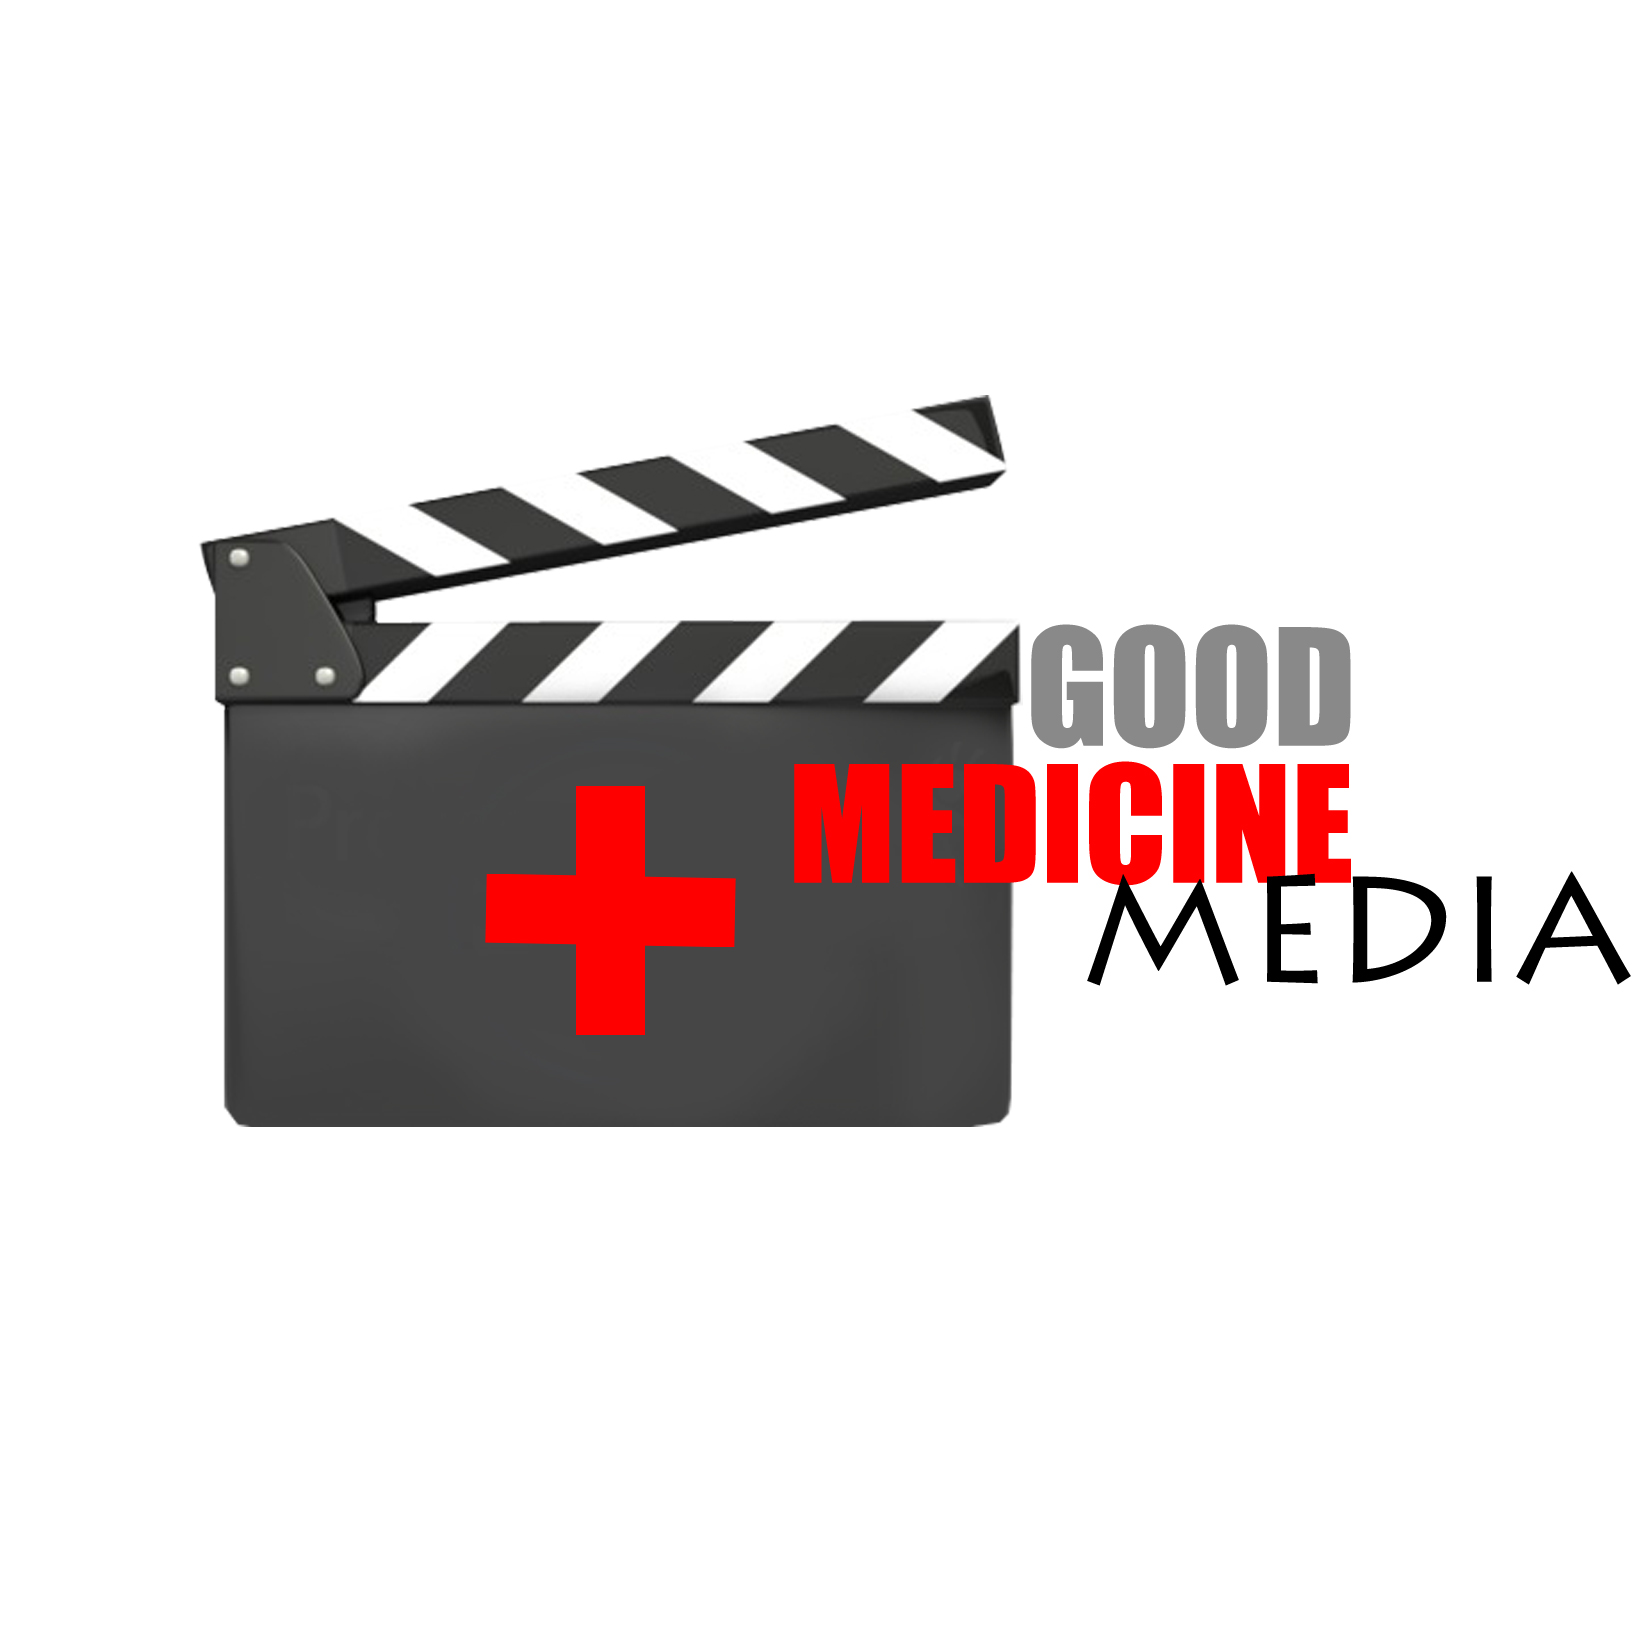 Logo Design by Rakia Raza - Entry No. 30 in the Logo Design Contest Good Medicine Media Logo Design.